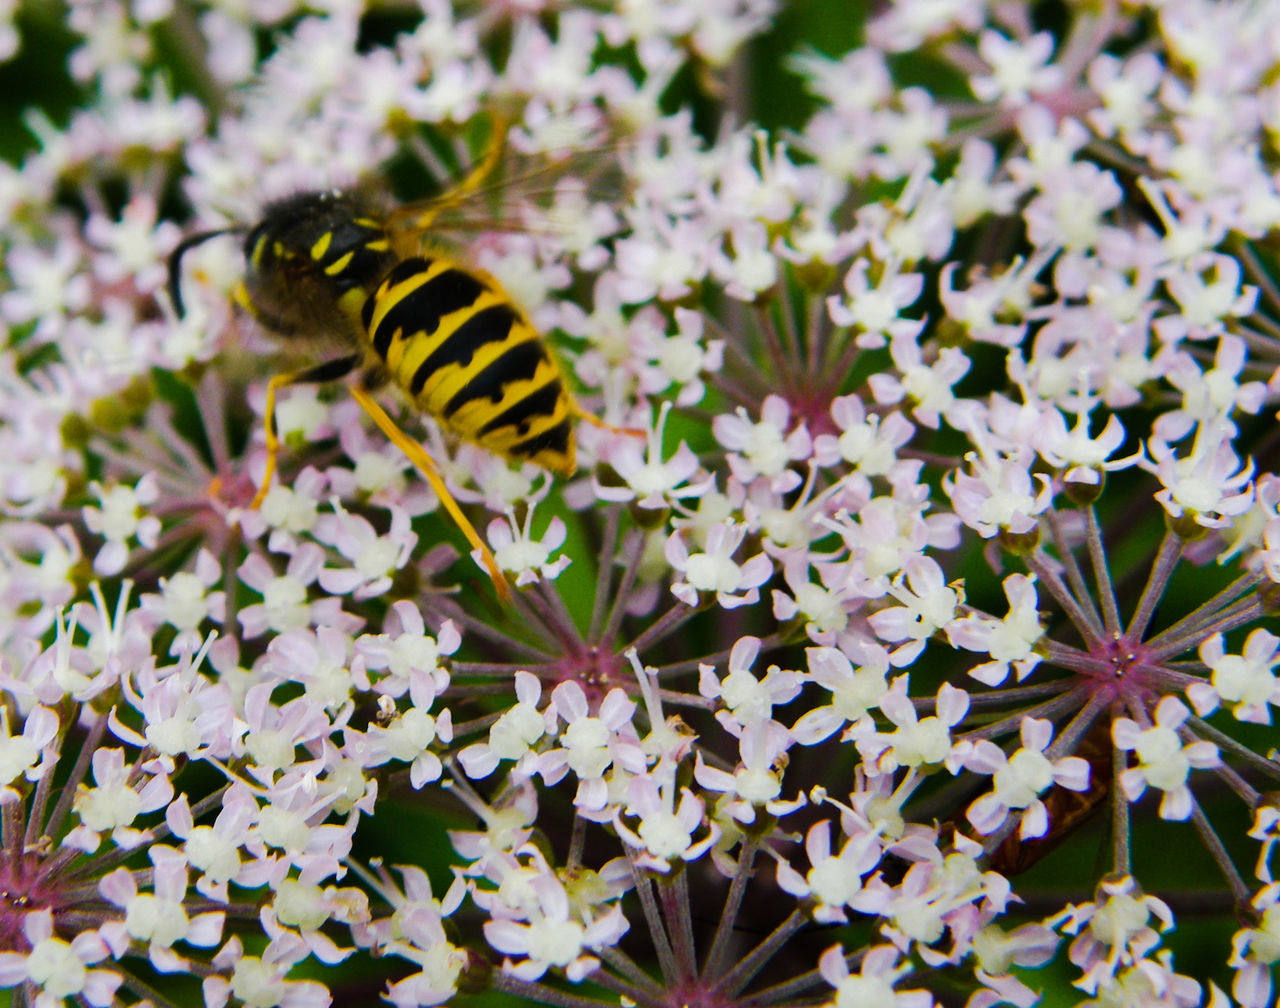 Animal Themes Animal Wildlife Animals In The Wild Beauty In Nature Close-up Day Flower Flower Head Fragility Freshness Garden Garden Flowers Garden Photography Growth Insect Nature No People One Animal Outdoors Plant Pollination Pollinators